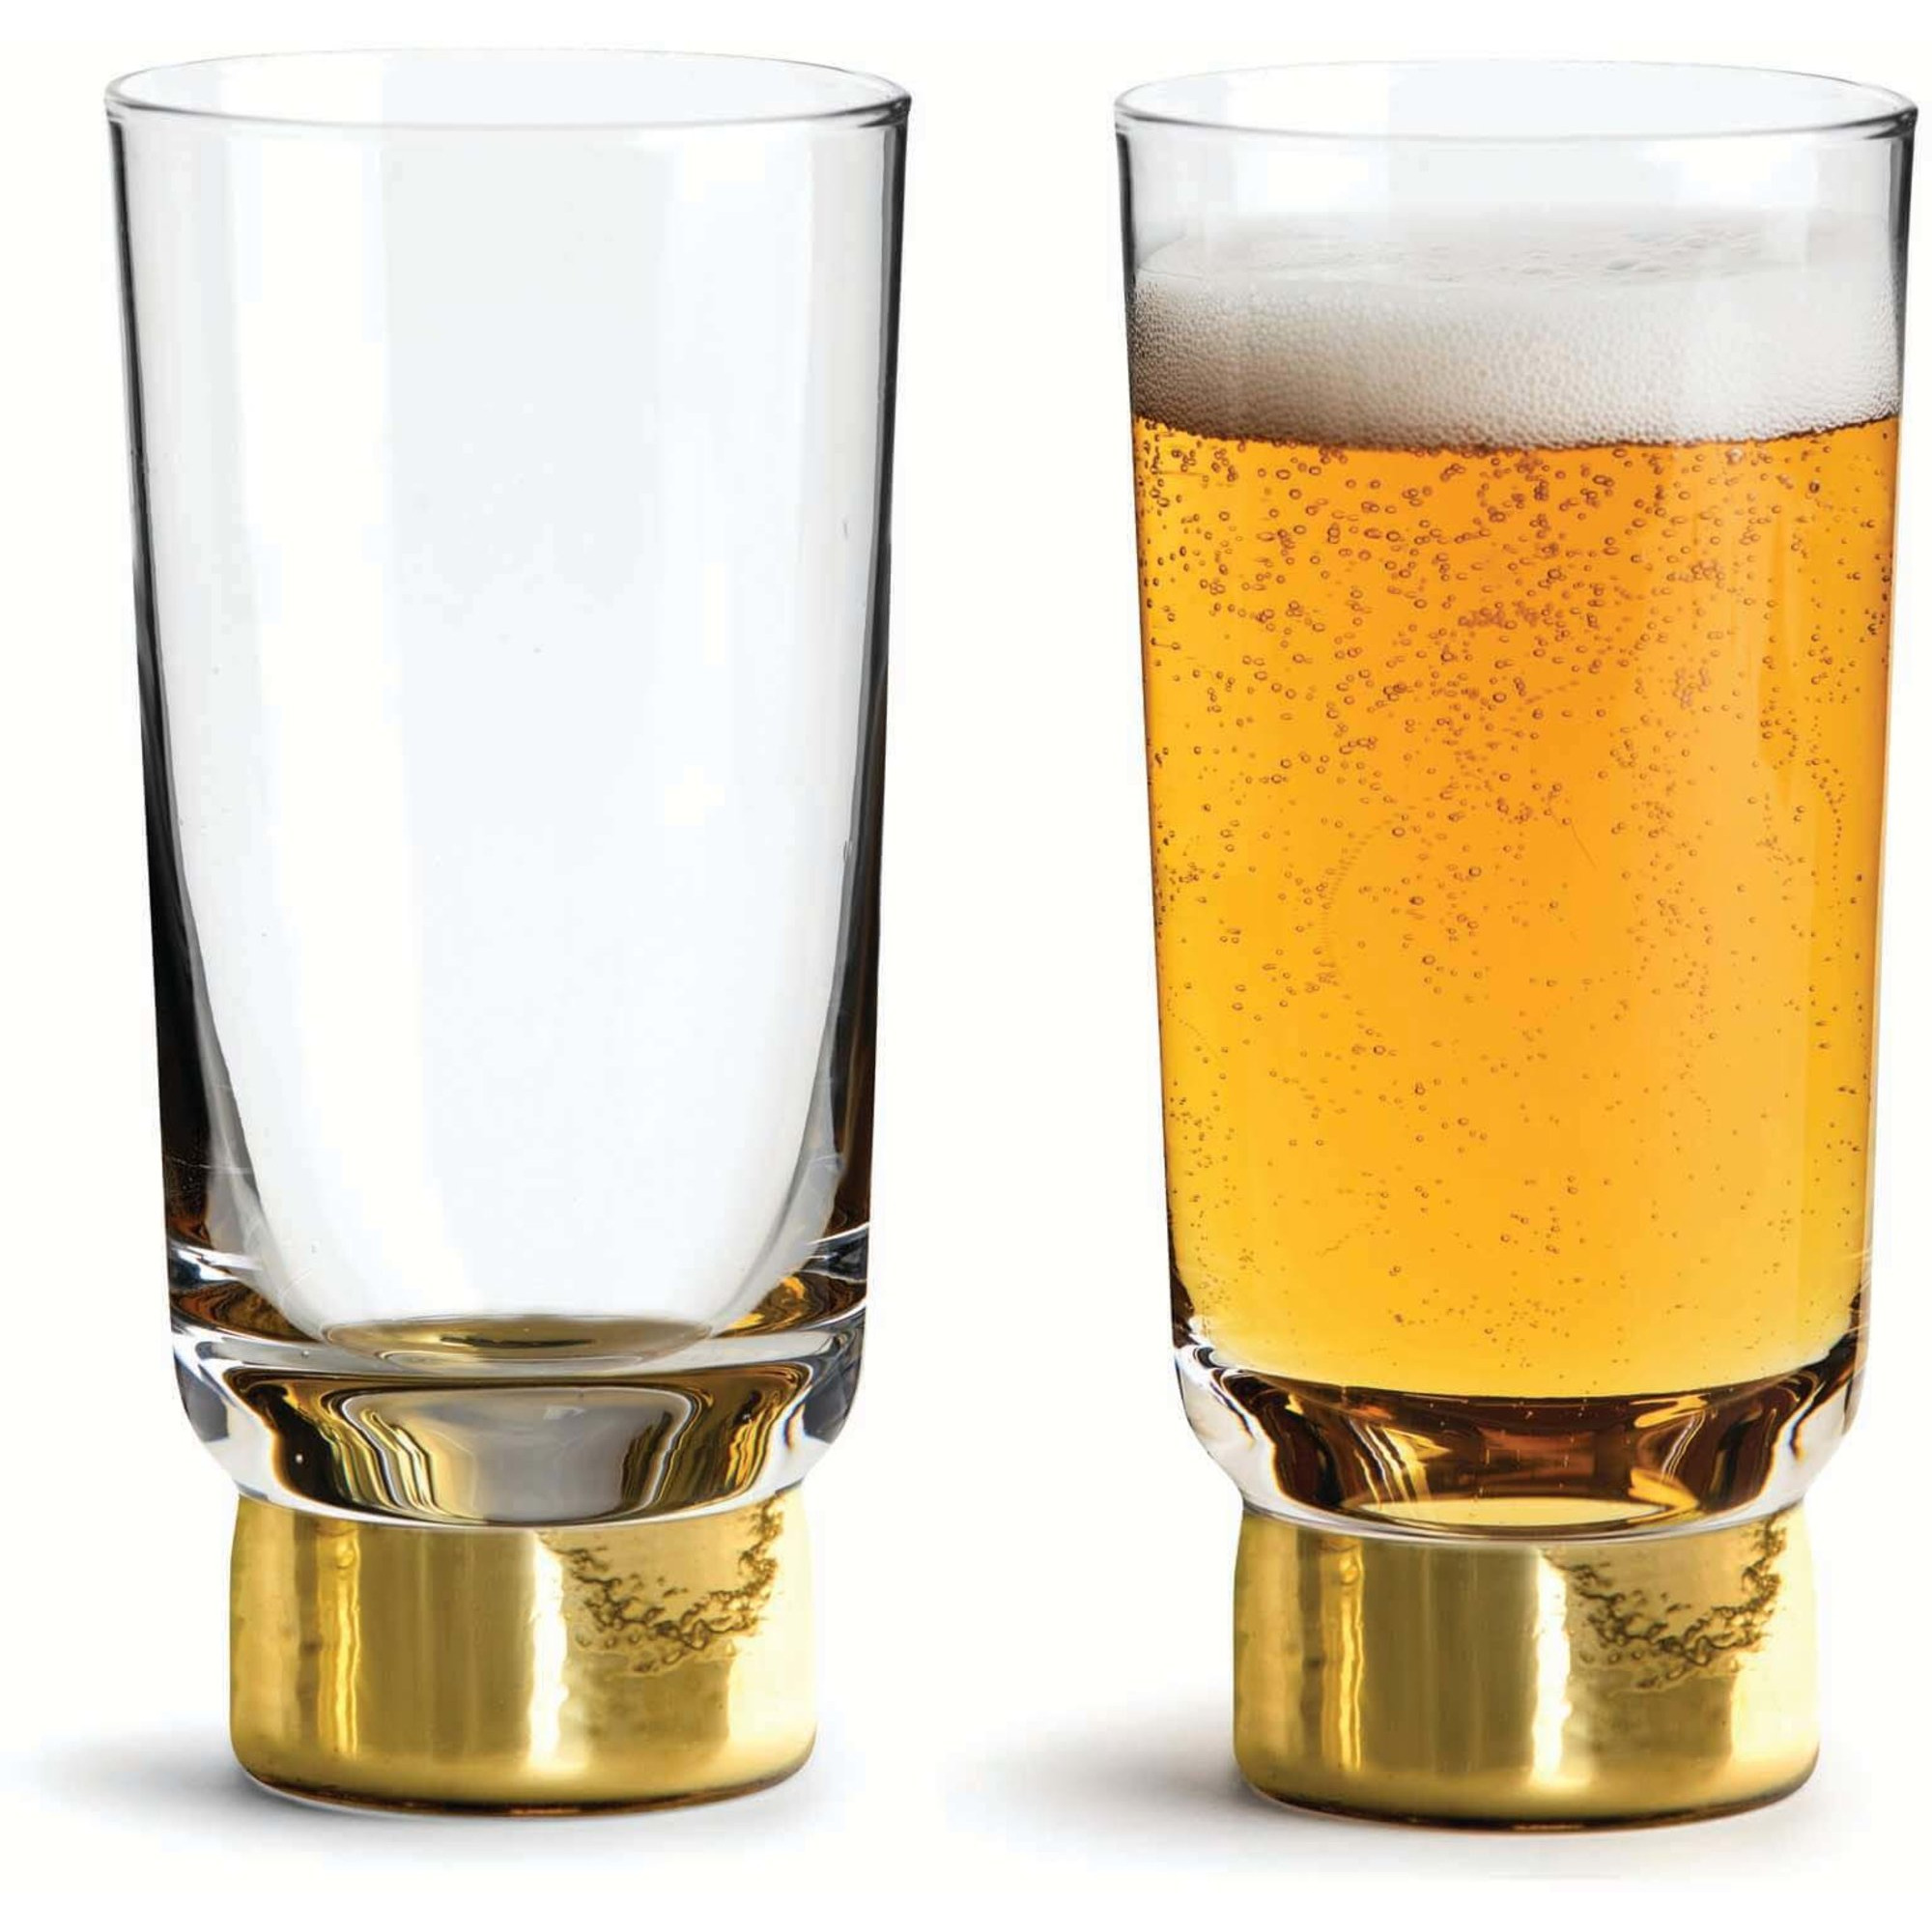 Sagaform Club glas 33 cl, 2-pack